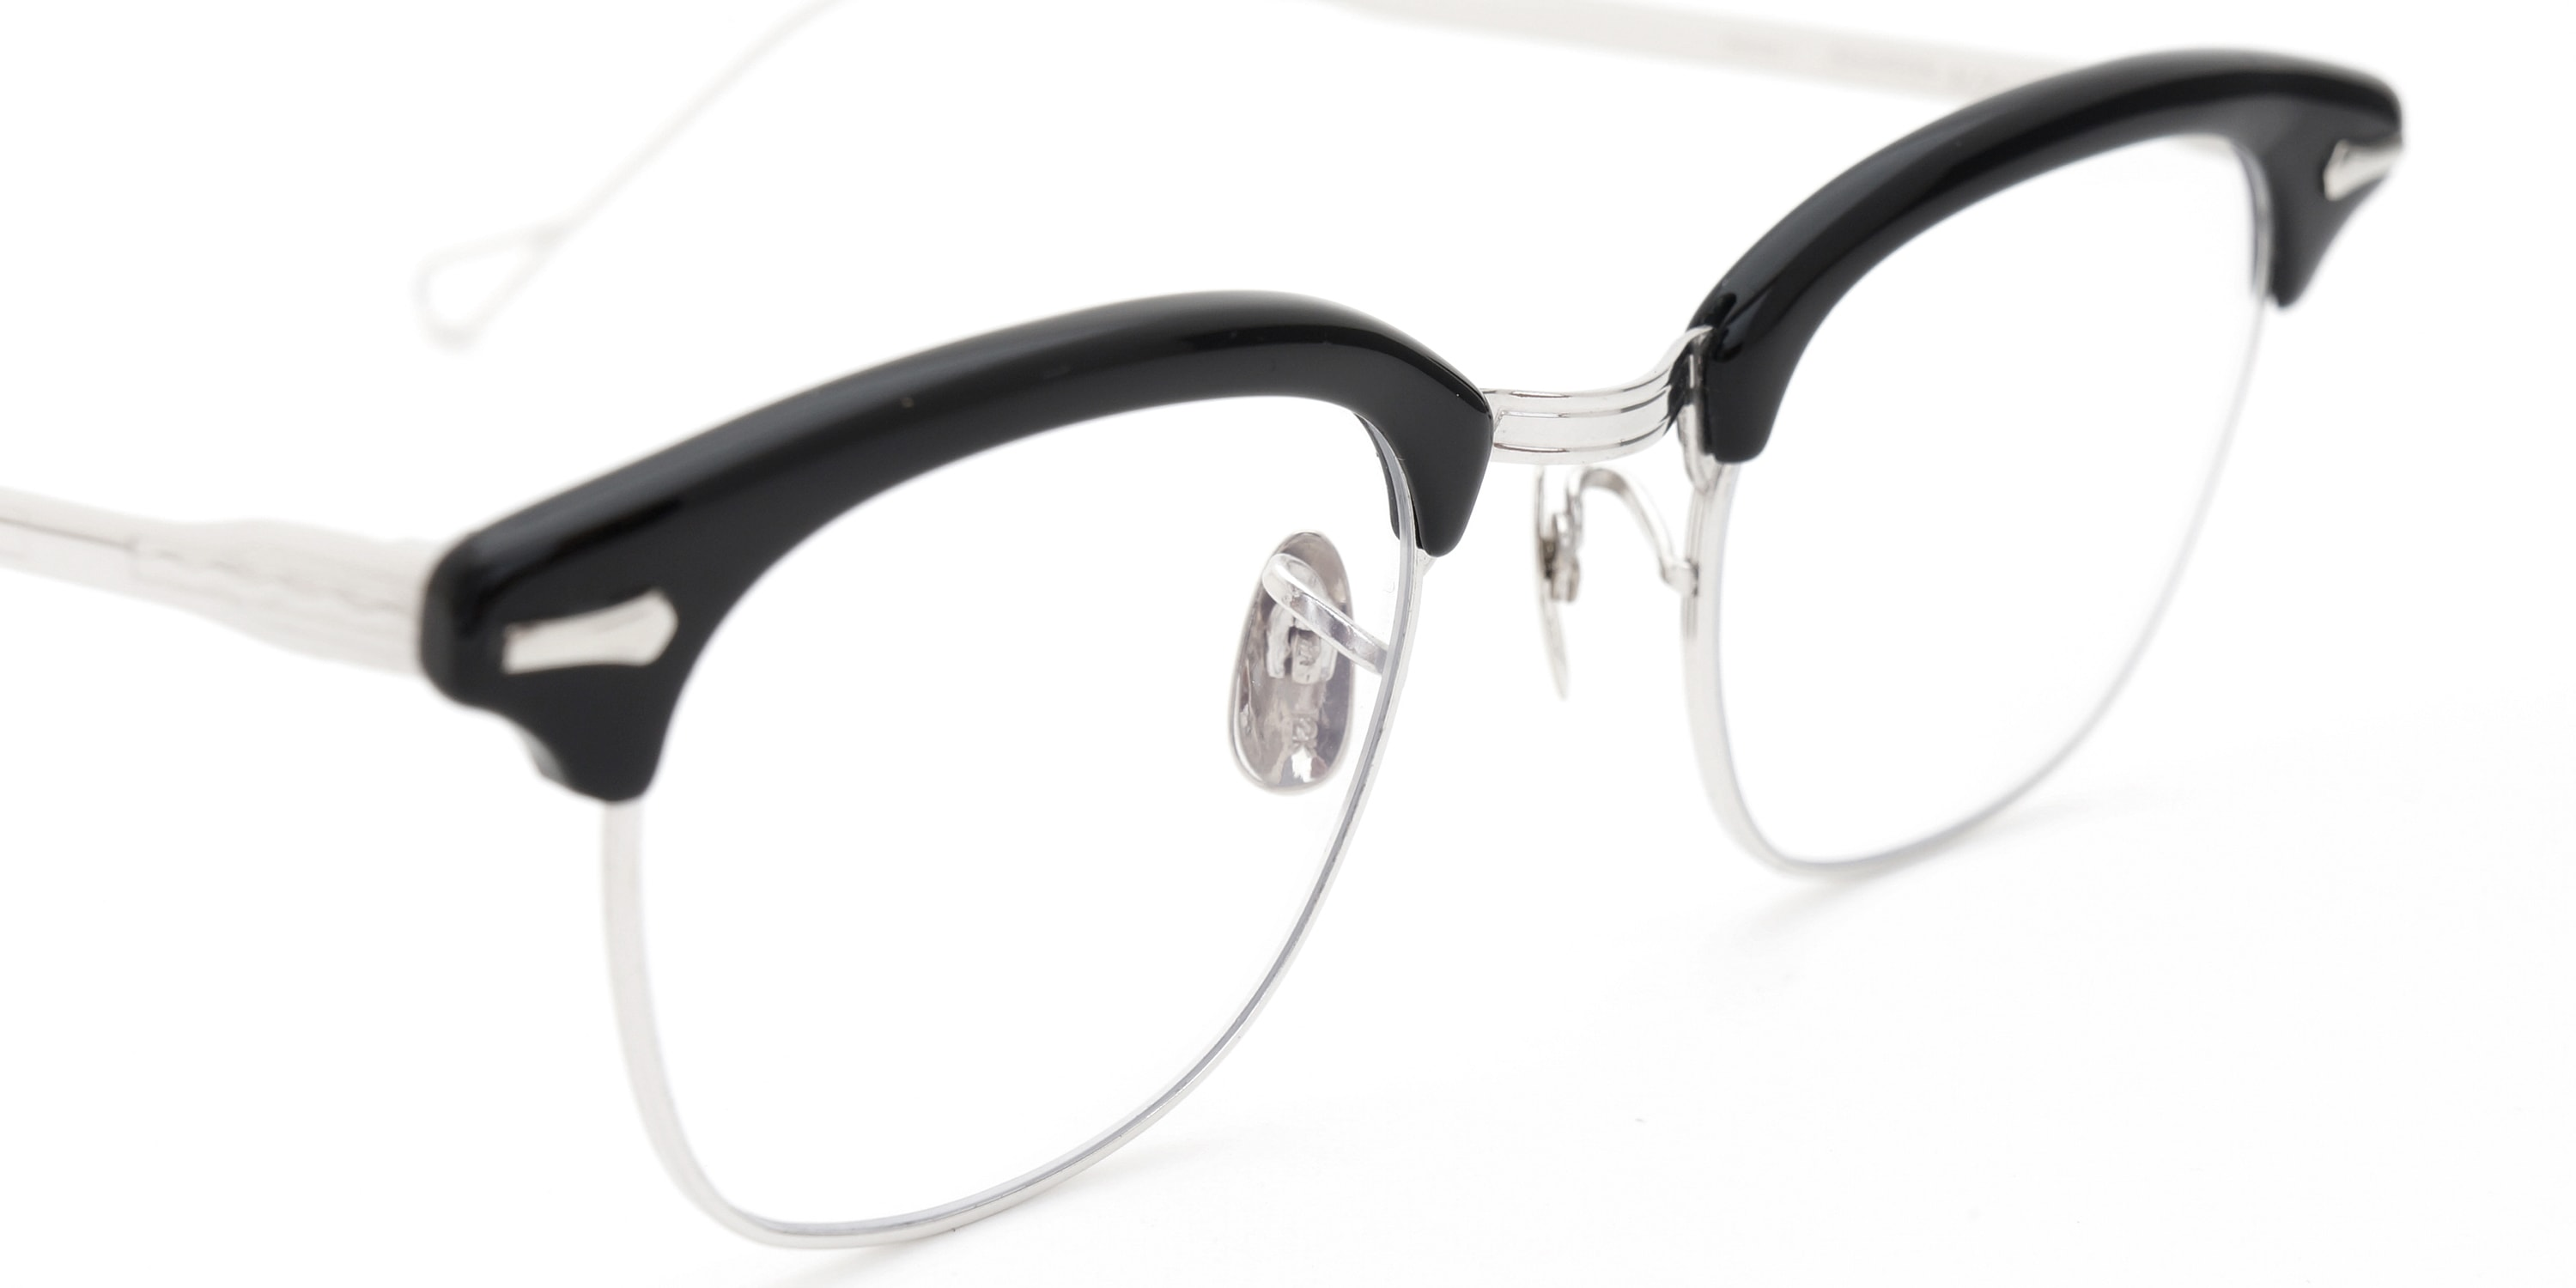 The Spectacle メガネ 1950s-1960s SHURON RONSIR GF-Temple Black WG 1/10 12KGF 46/22 イメージ8